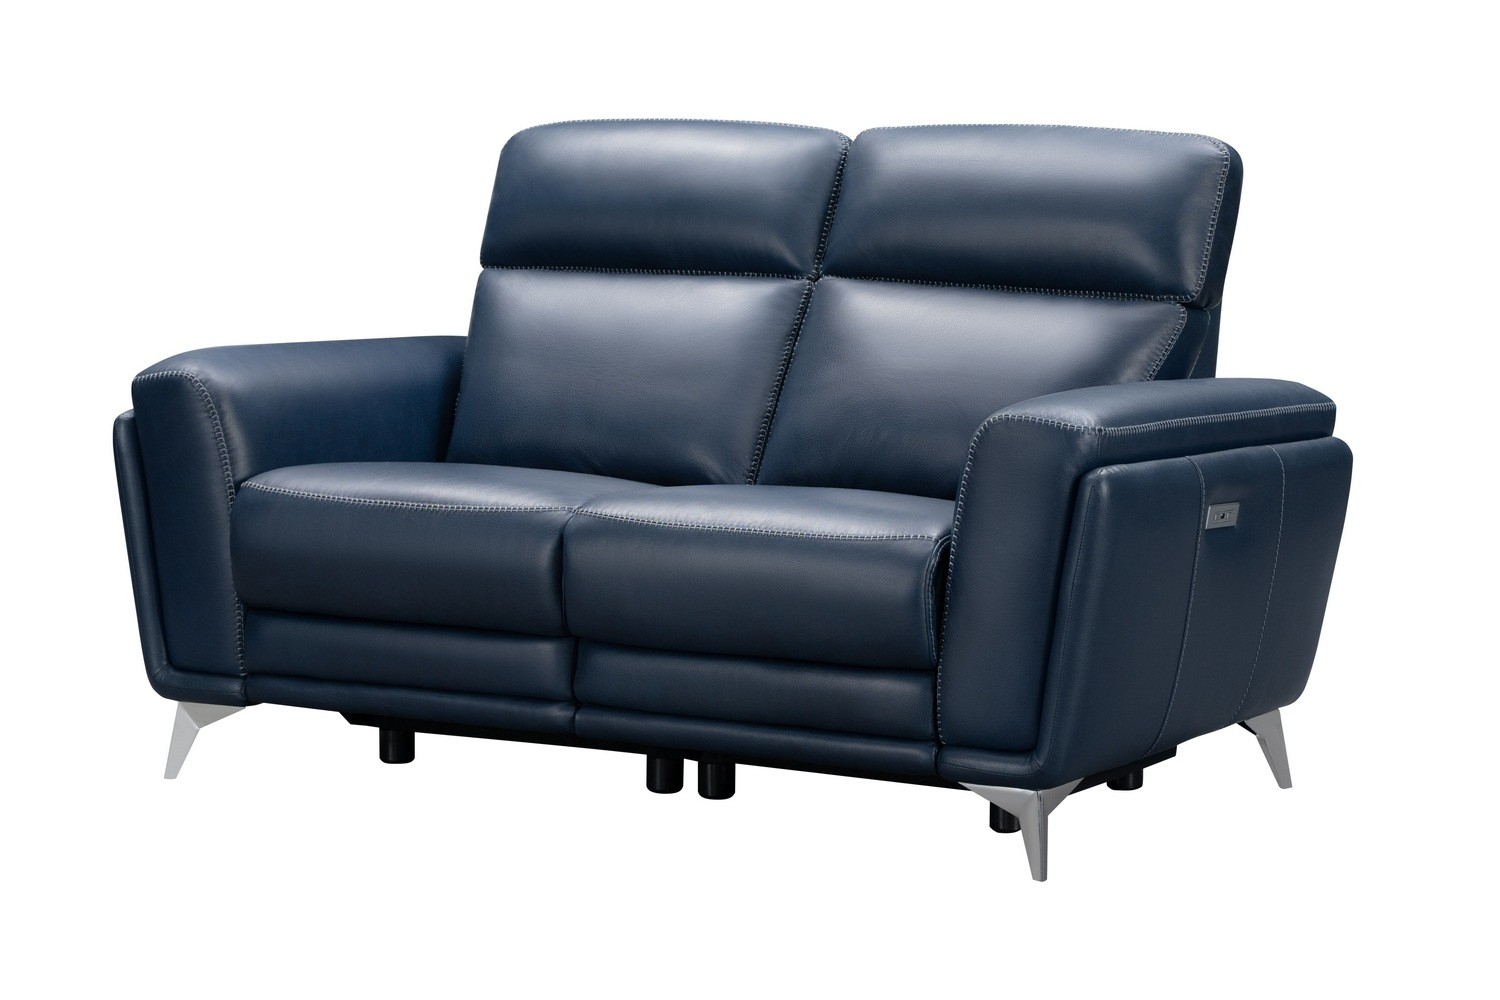 Barcalounger Cameron Power Reclining Loveseat With Power Throughout Marco Leather Power Reclining Sofas (View 2 of 15)